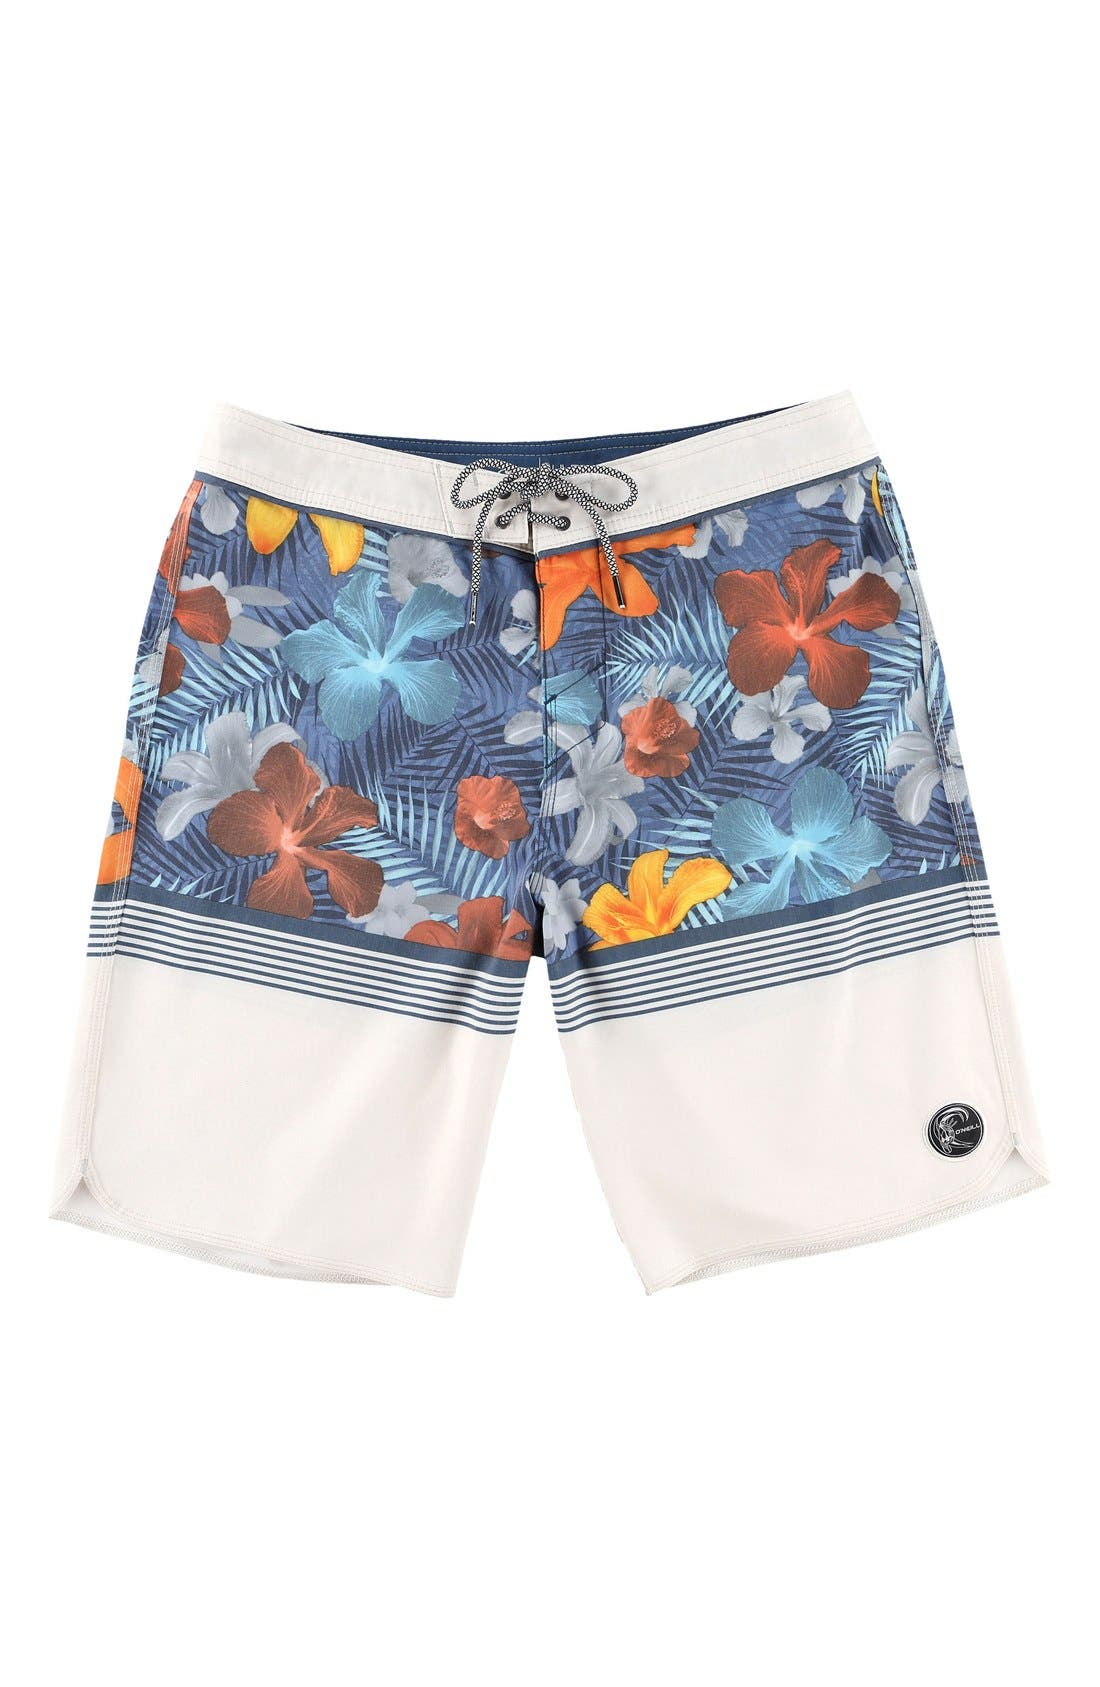 O'NEILL Hyperfreak Blissful Thinking Stretch Board Shorts